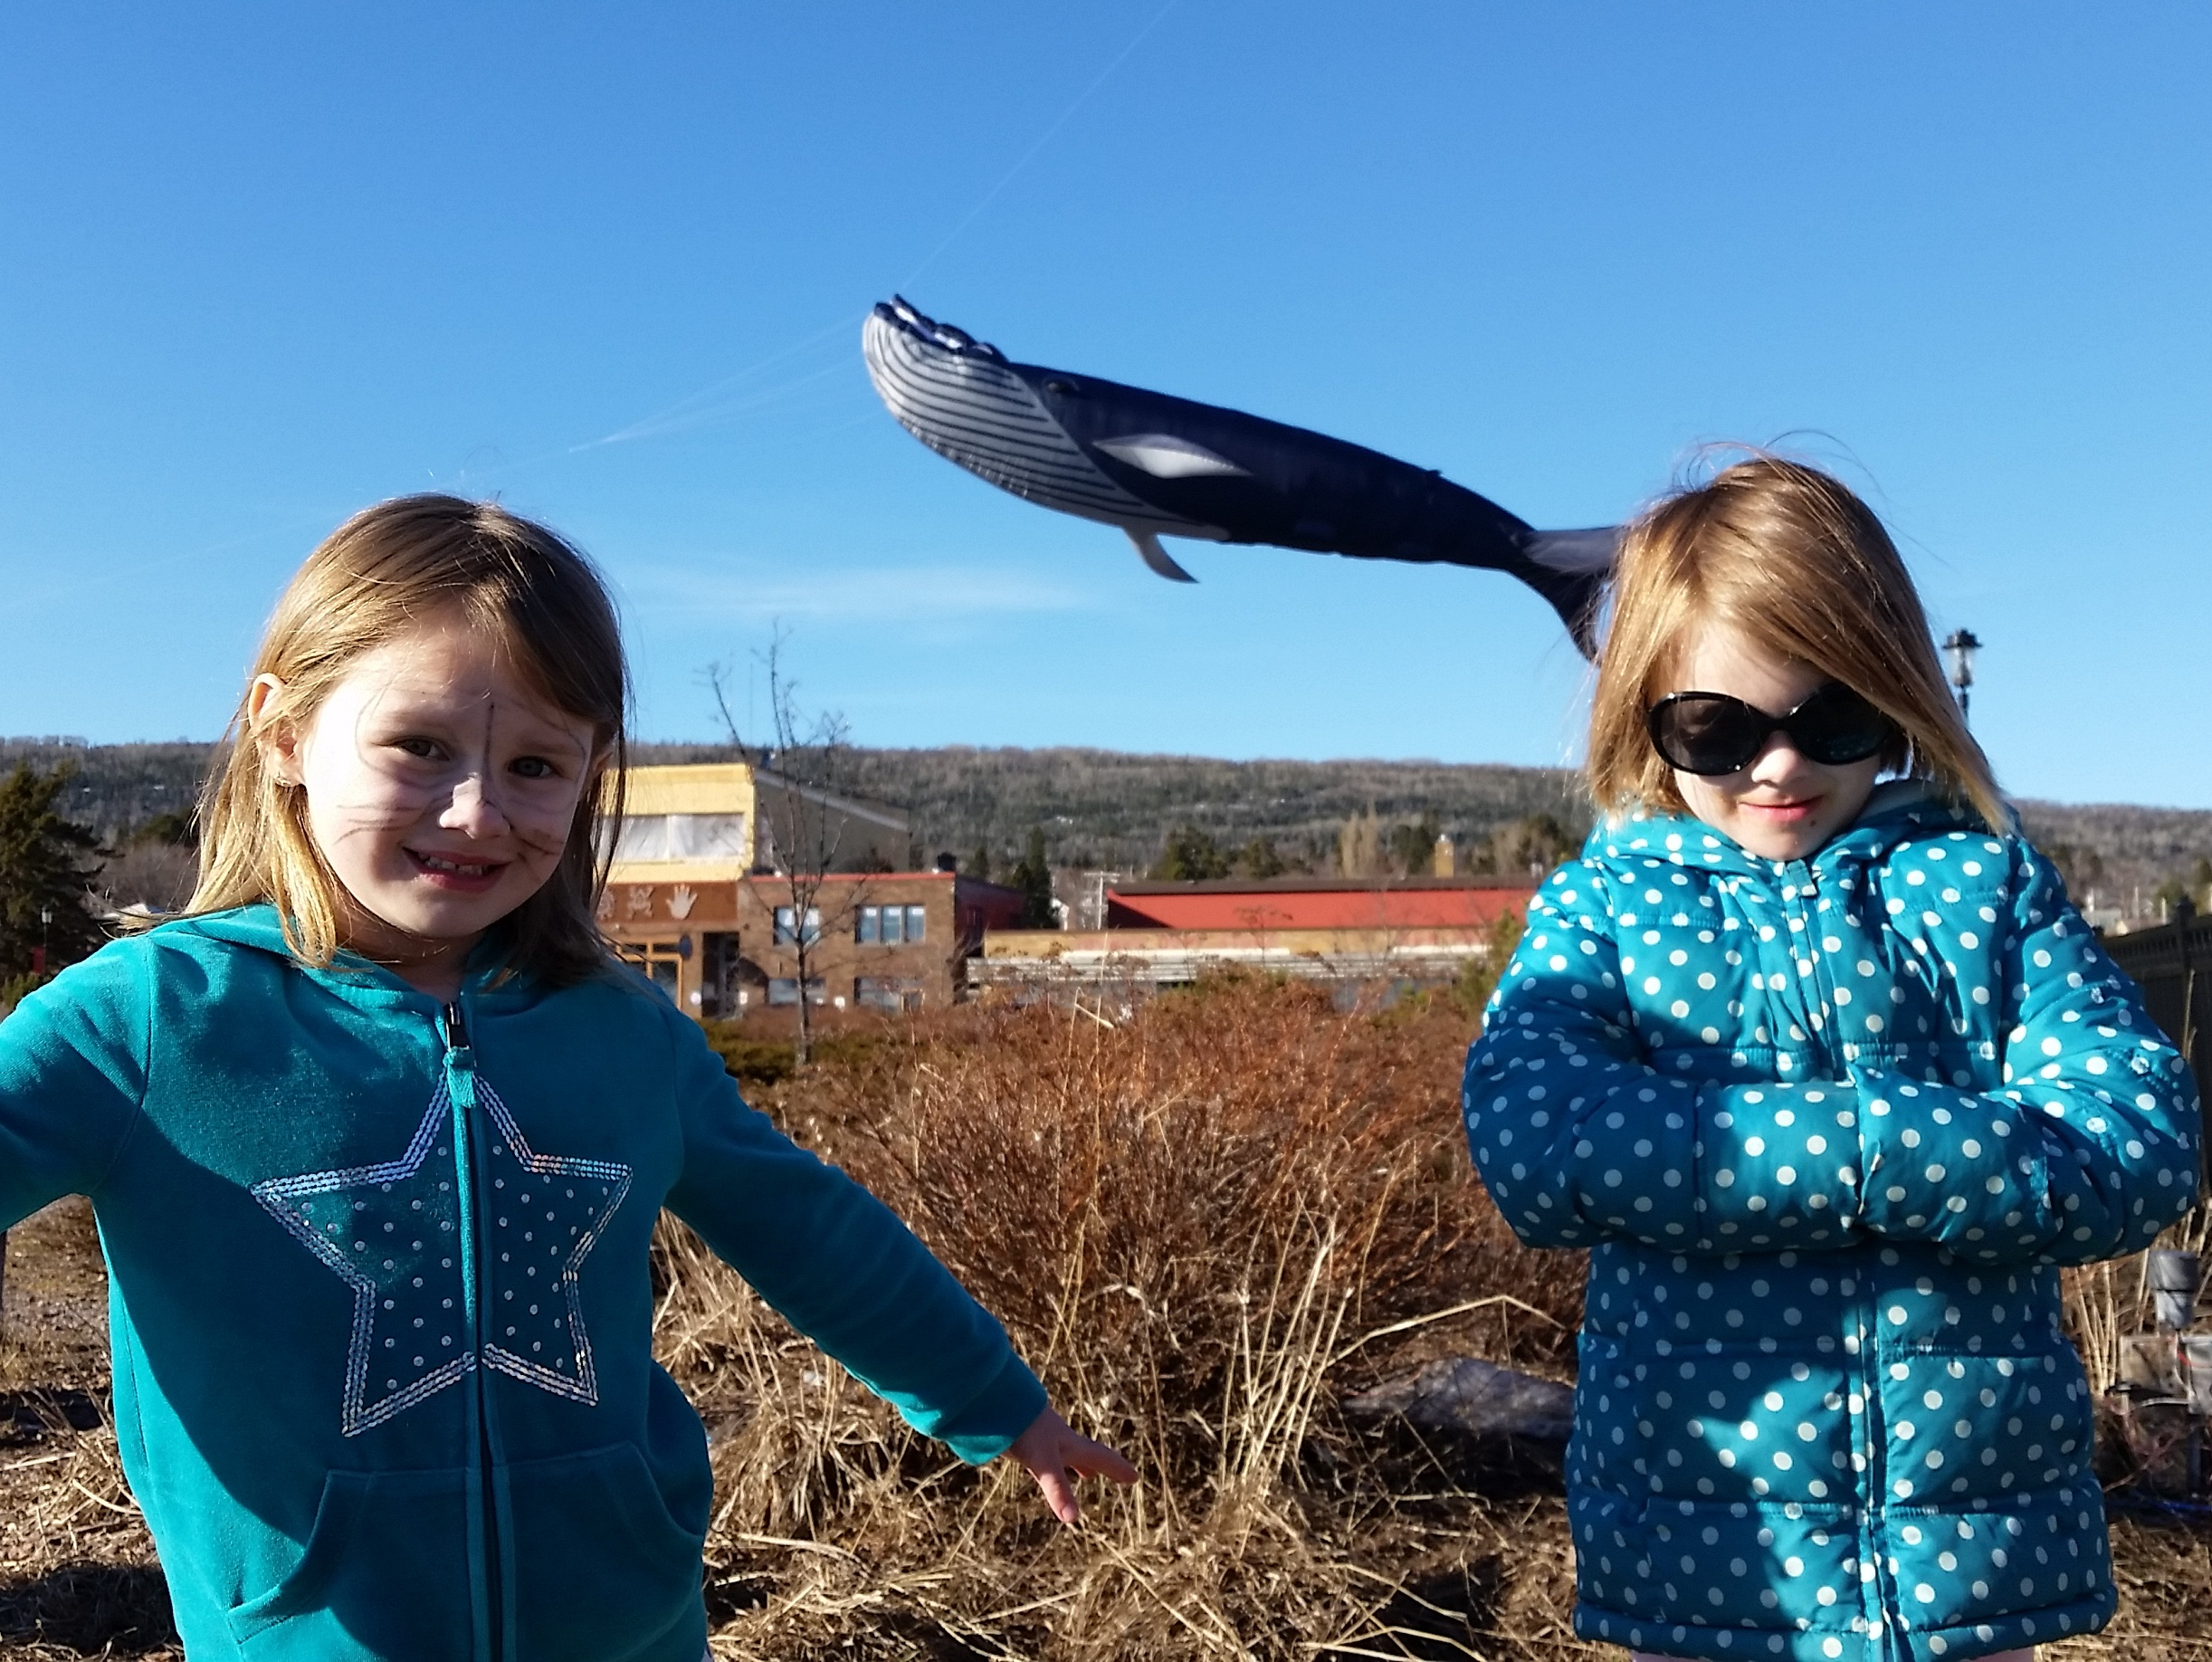 two girls in polka dot turquoise don't realize a whale is passing by